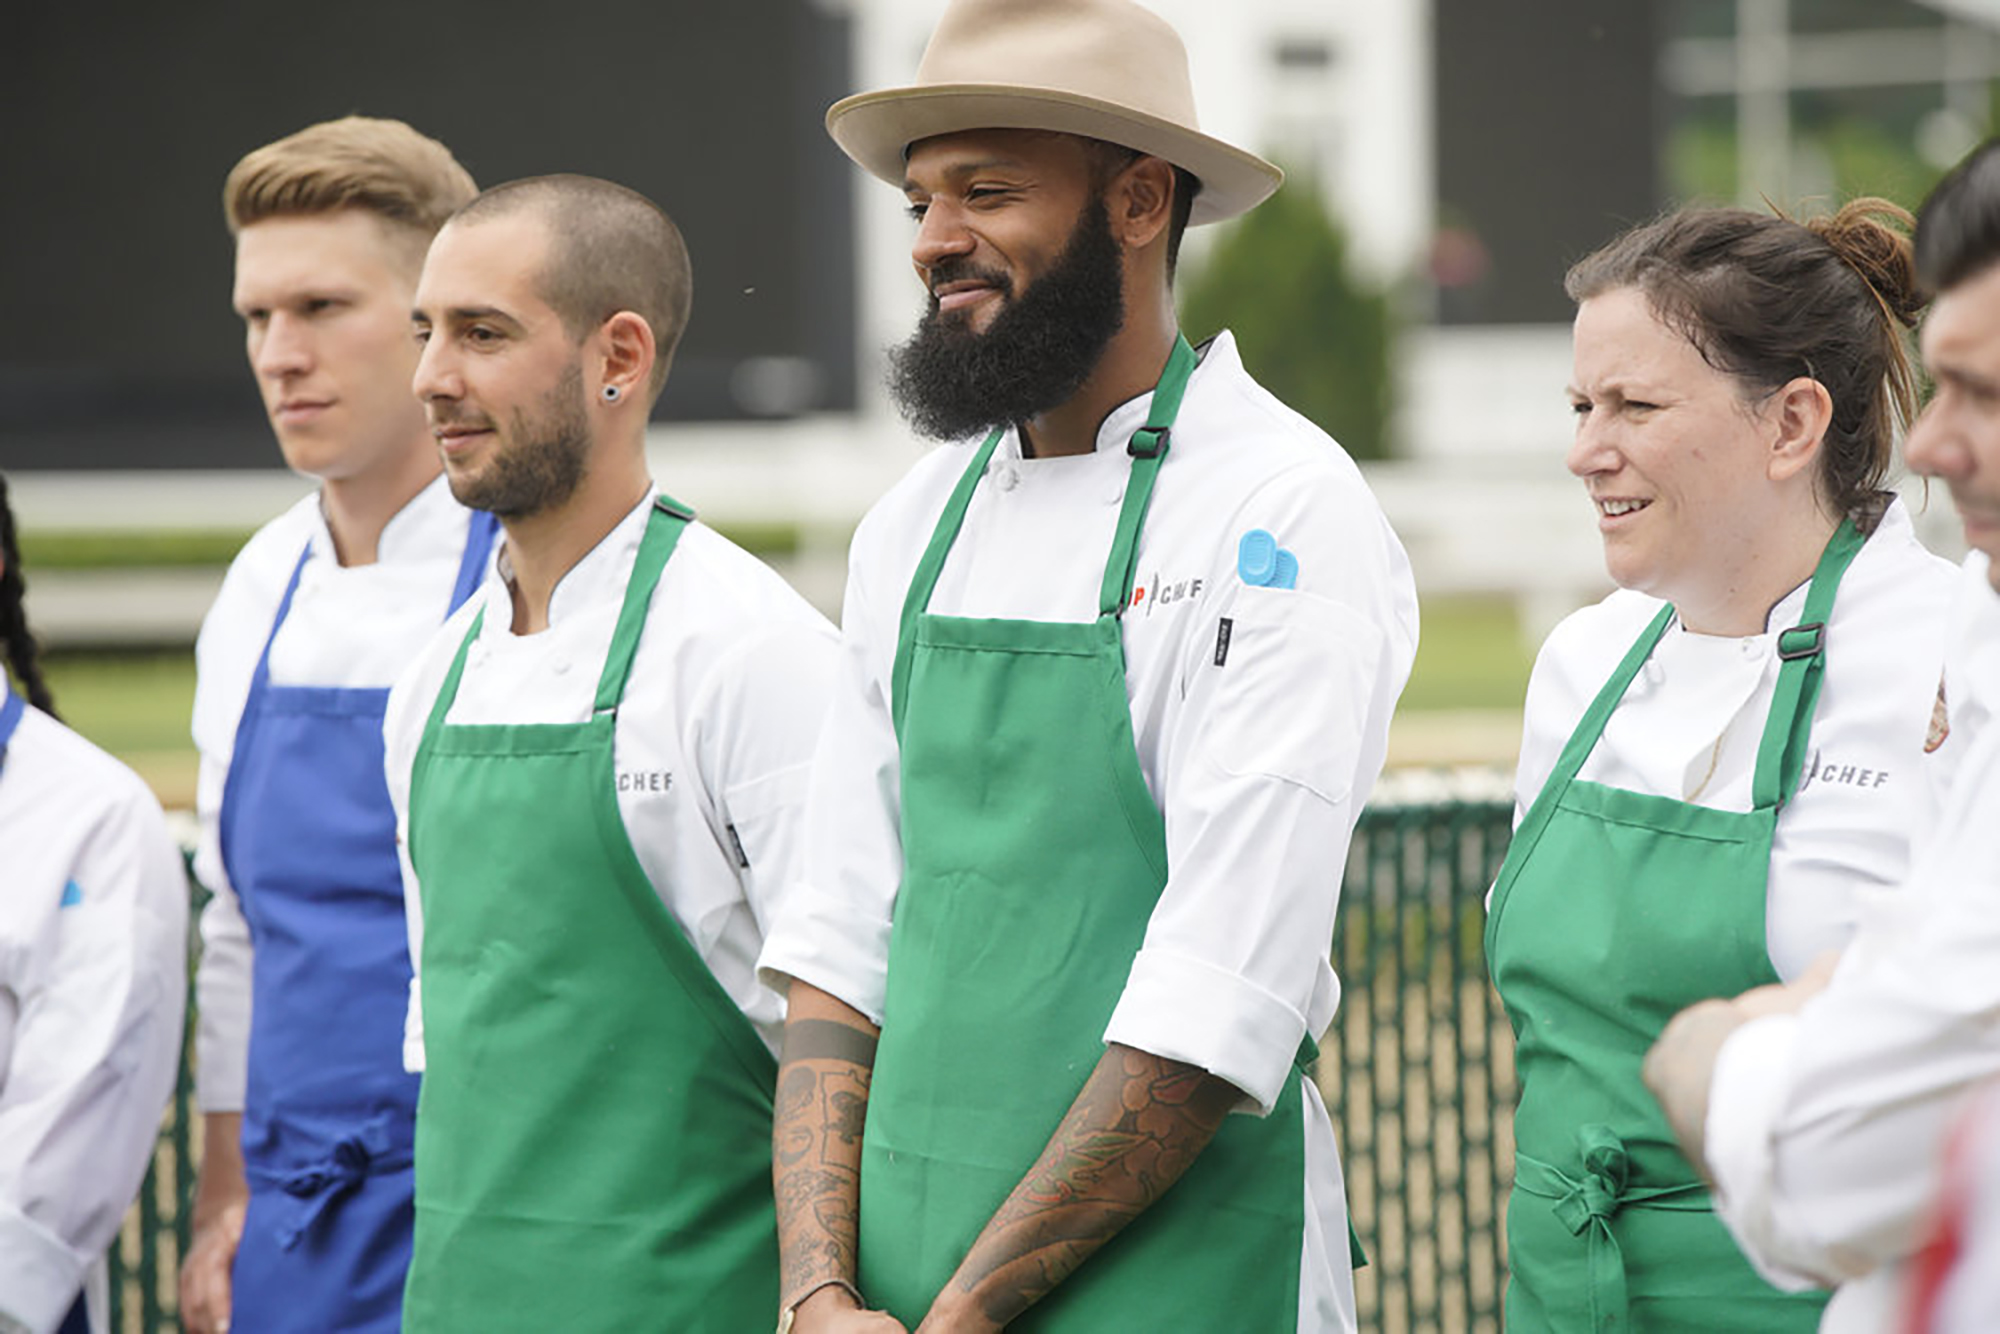 A Refreshingly Likable Cast Gets Cooking on 'Top Chef Kentucky'